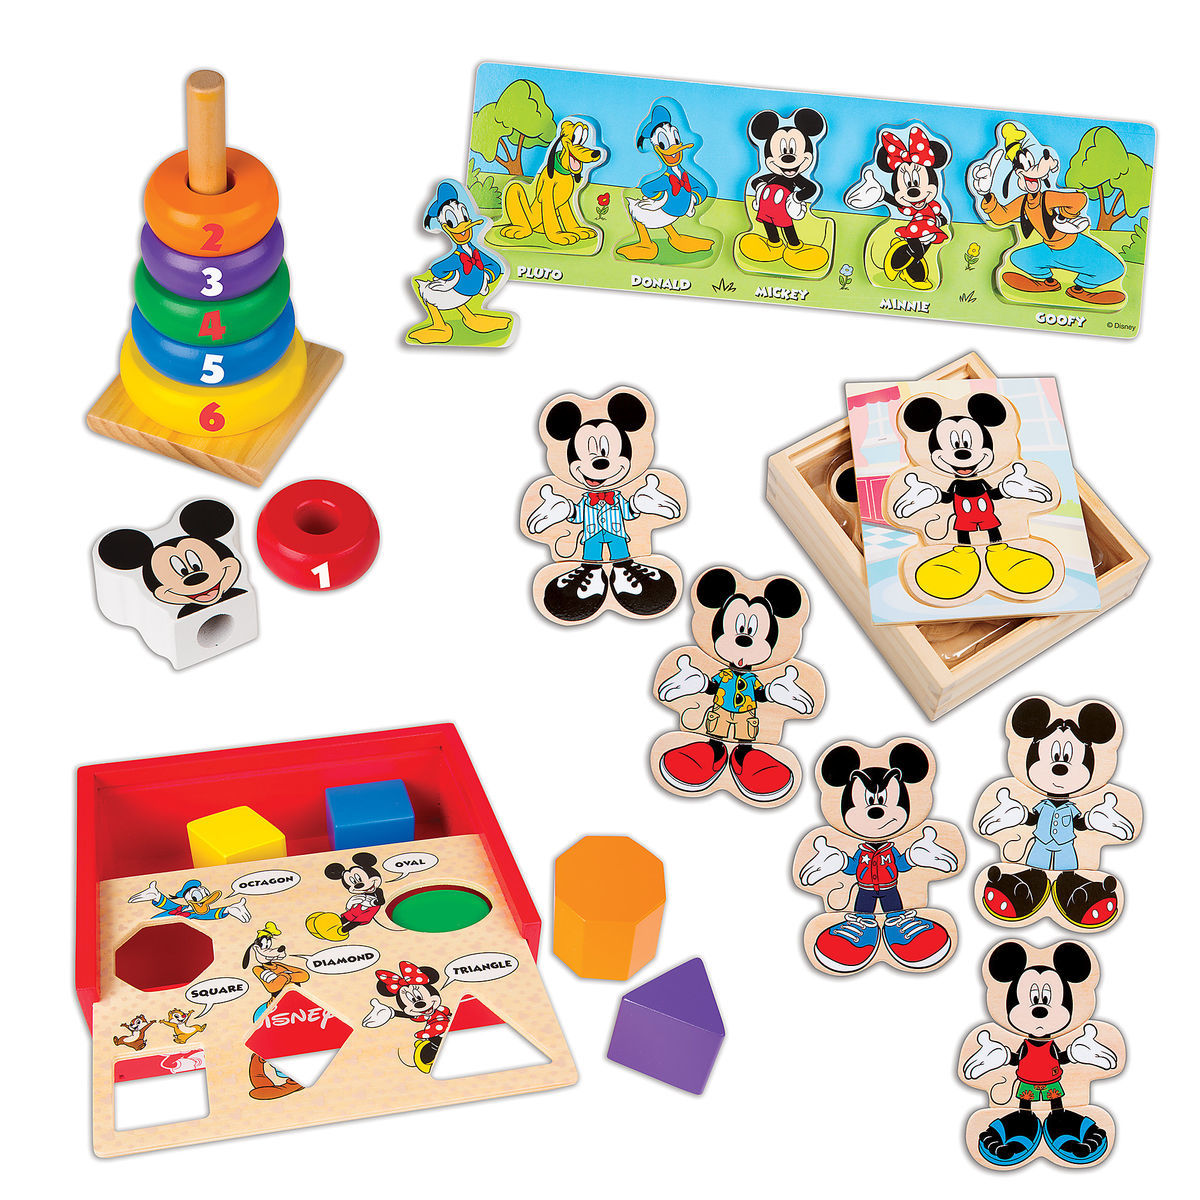 Product Image Of Mickey Mouse Deluxe Wooden Classic Toy Set By Melissa Doug 1